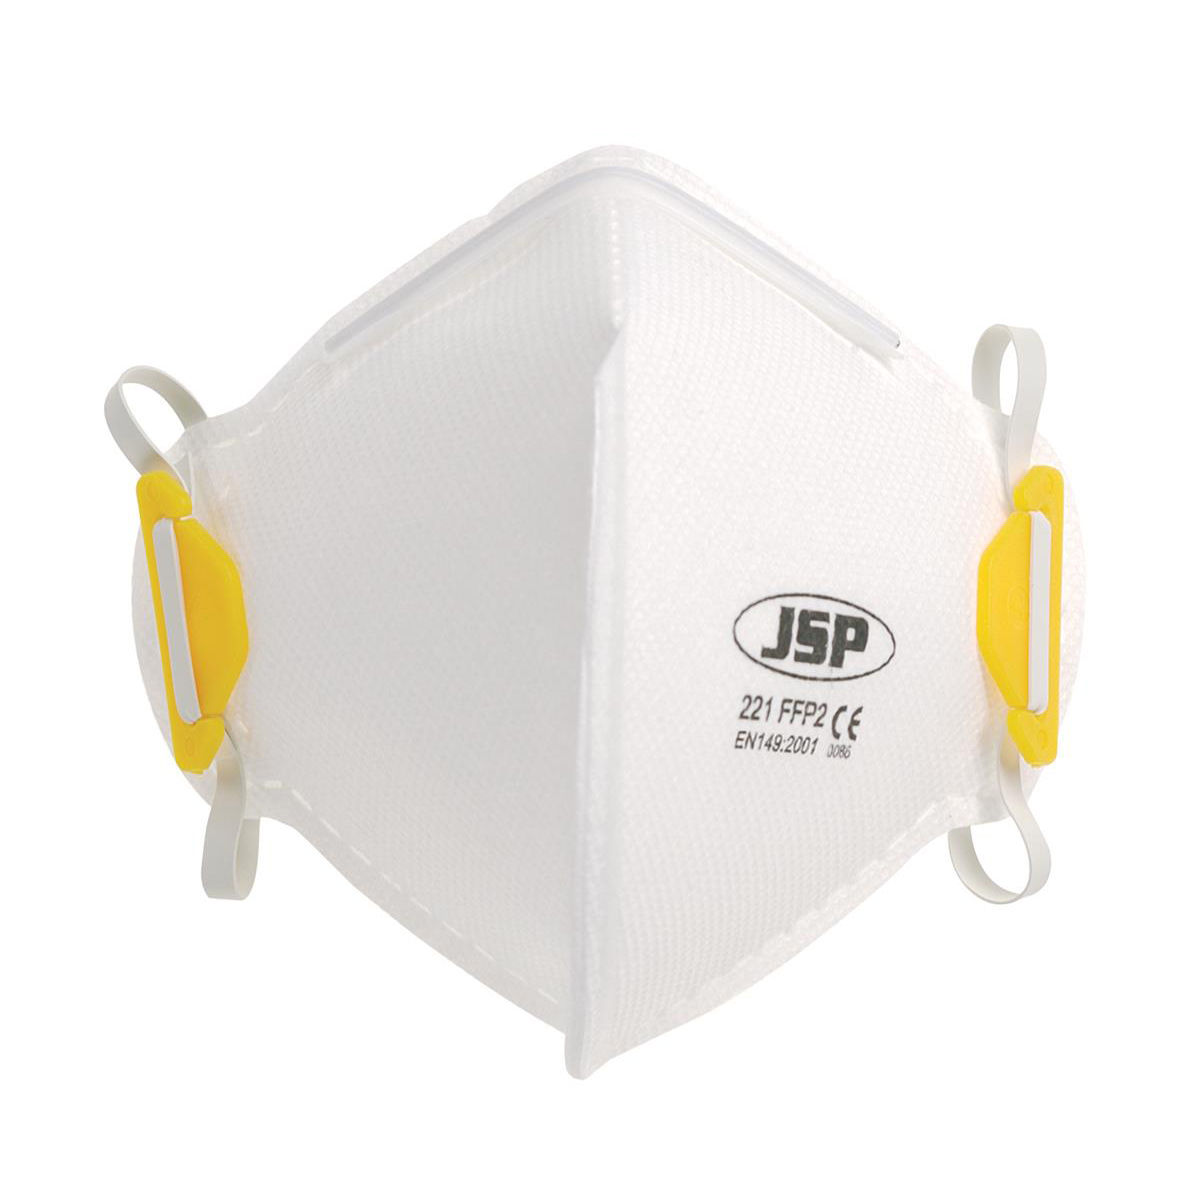 JSP Disposable Mask Fold-flat FFP2 Class 2 EN149:2001 & A1:2009 Standard Ref BEA120-101-000 Pack 20